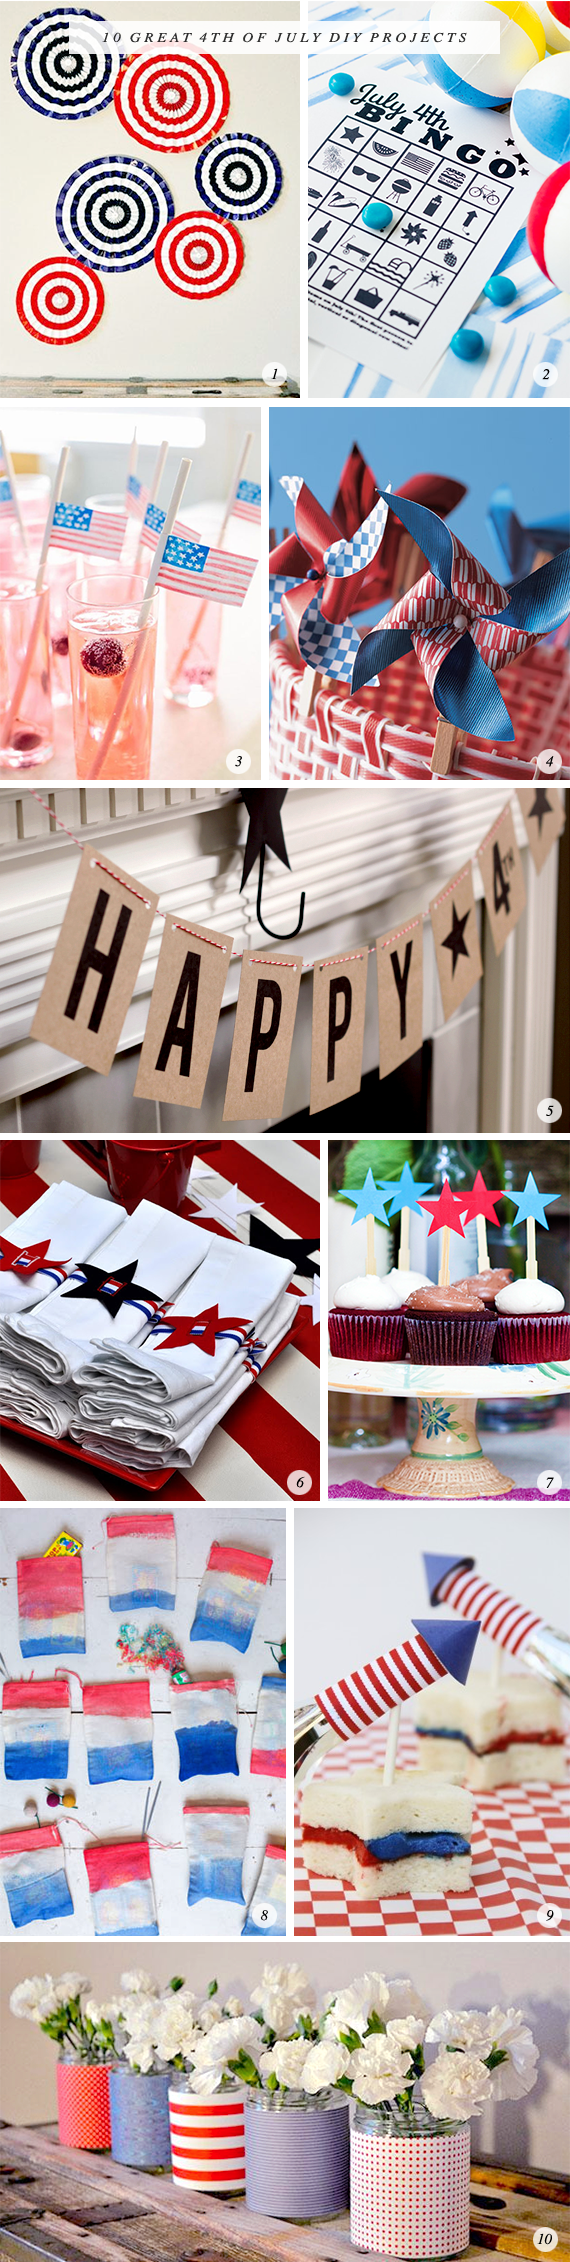 10 Great 4th of July DIY Projects // Bubby and Bean